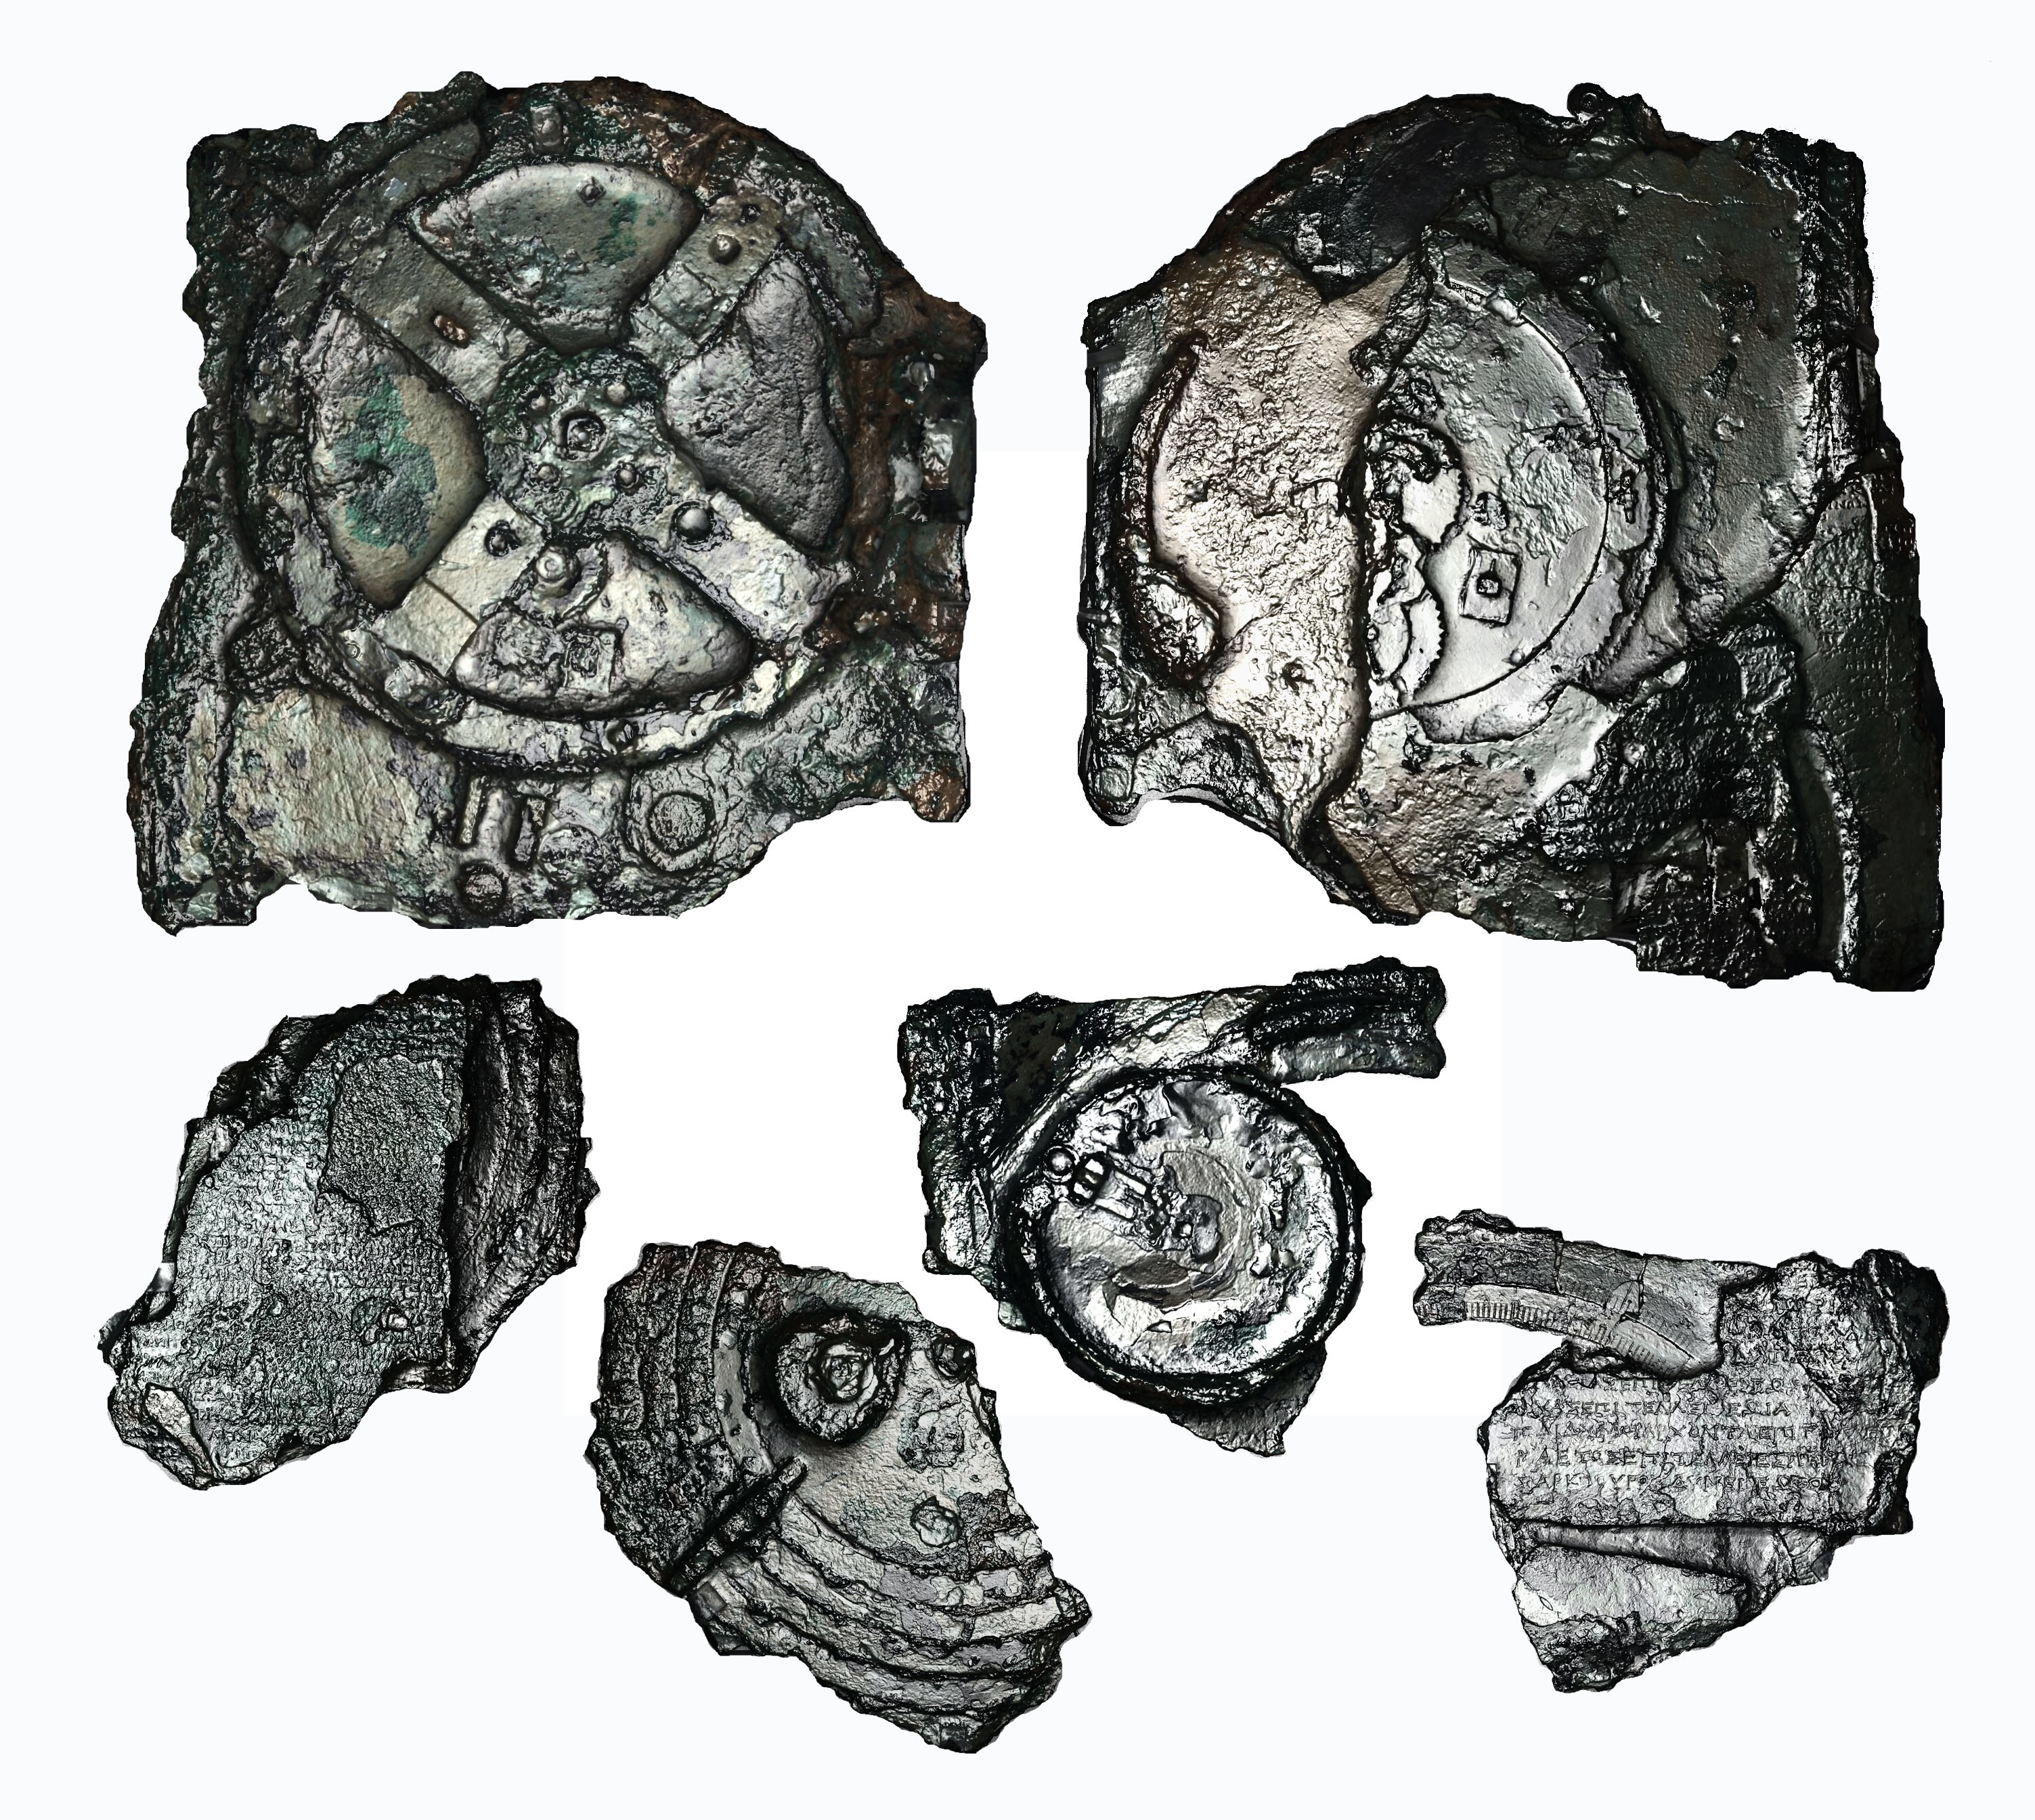 The ancient Antikythera, in an electronically enhanced image, courtesy of http://dlib.nyu.edu